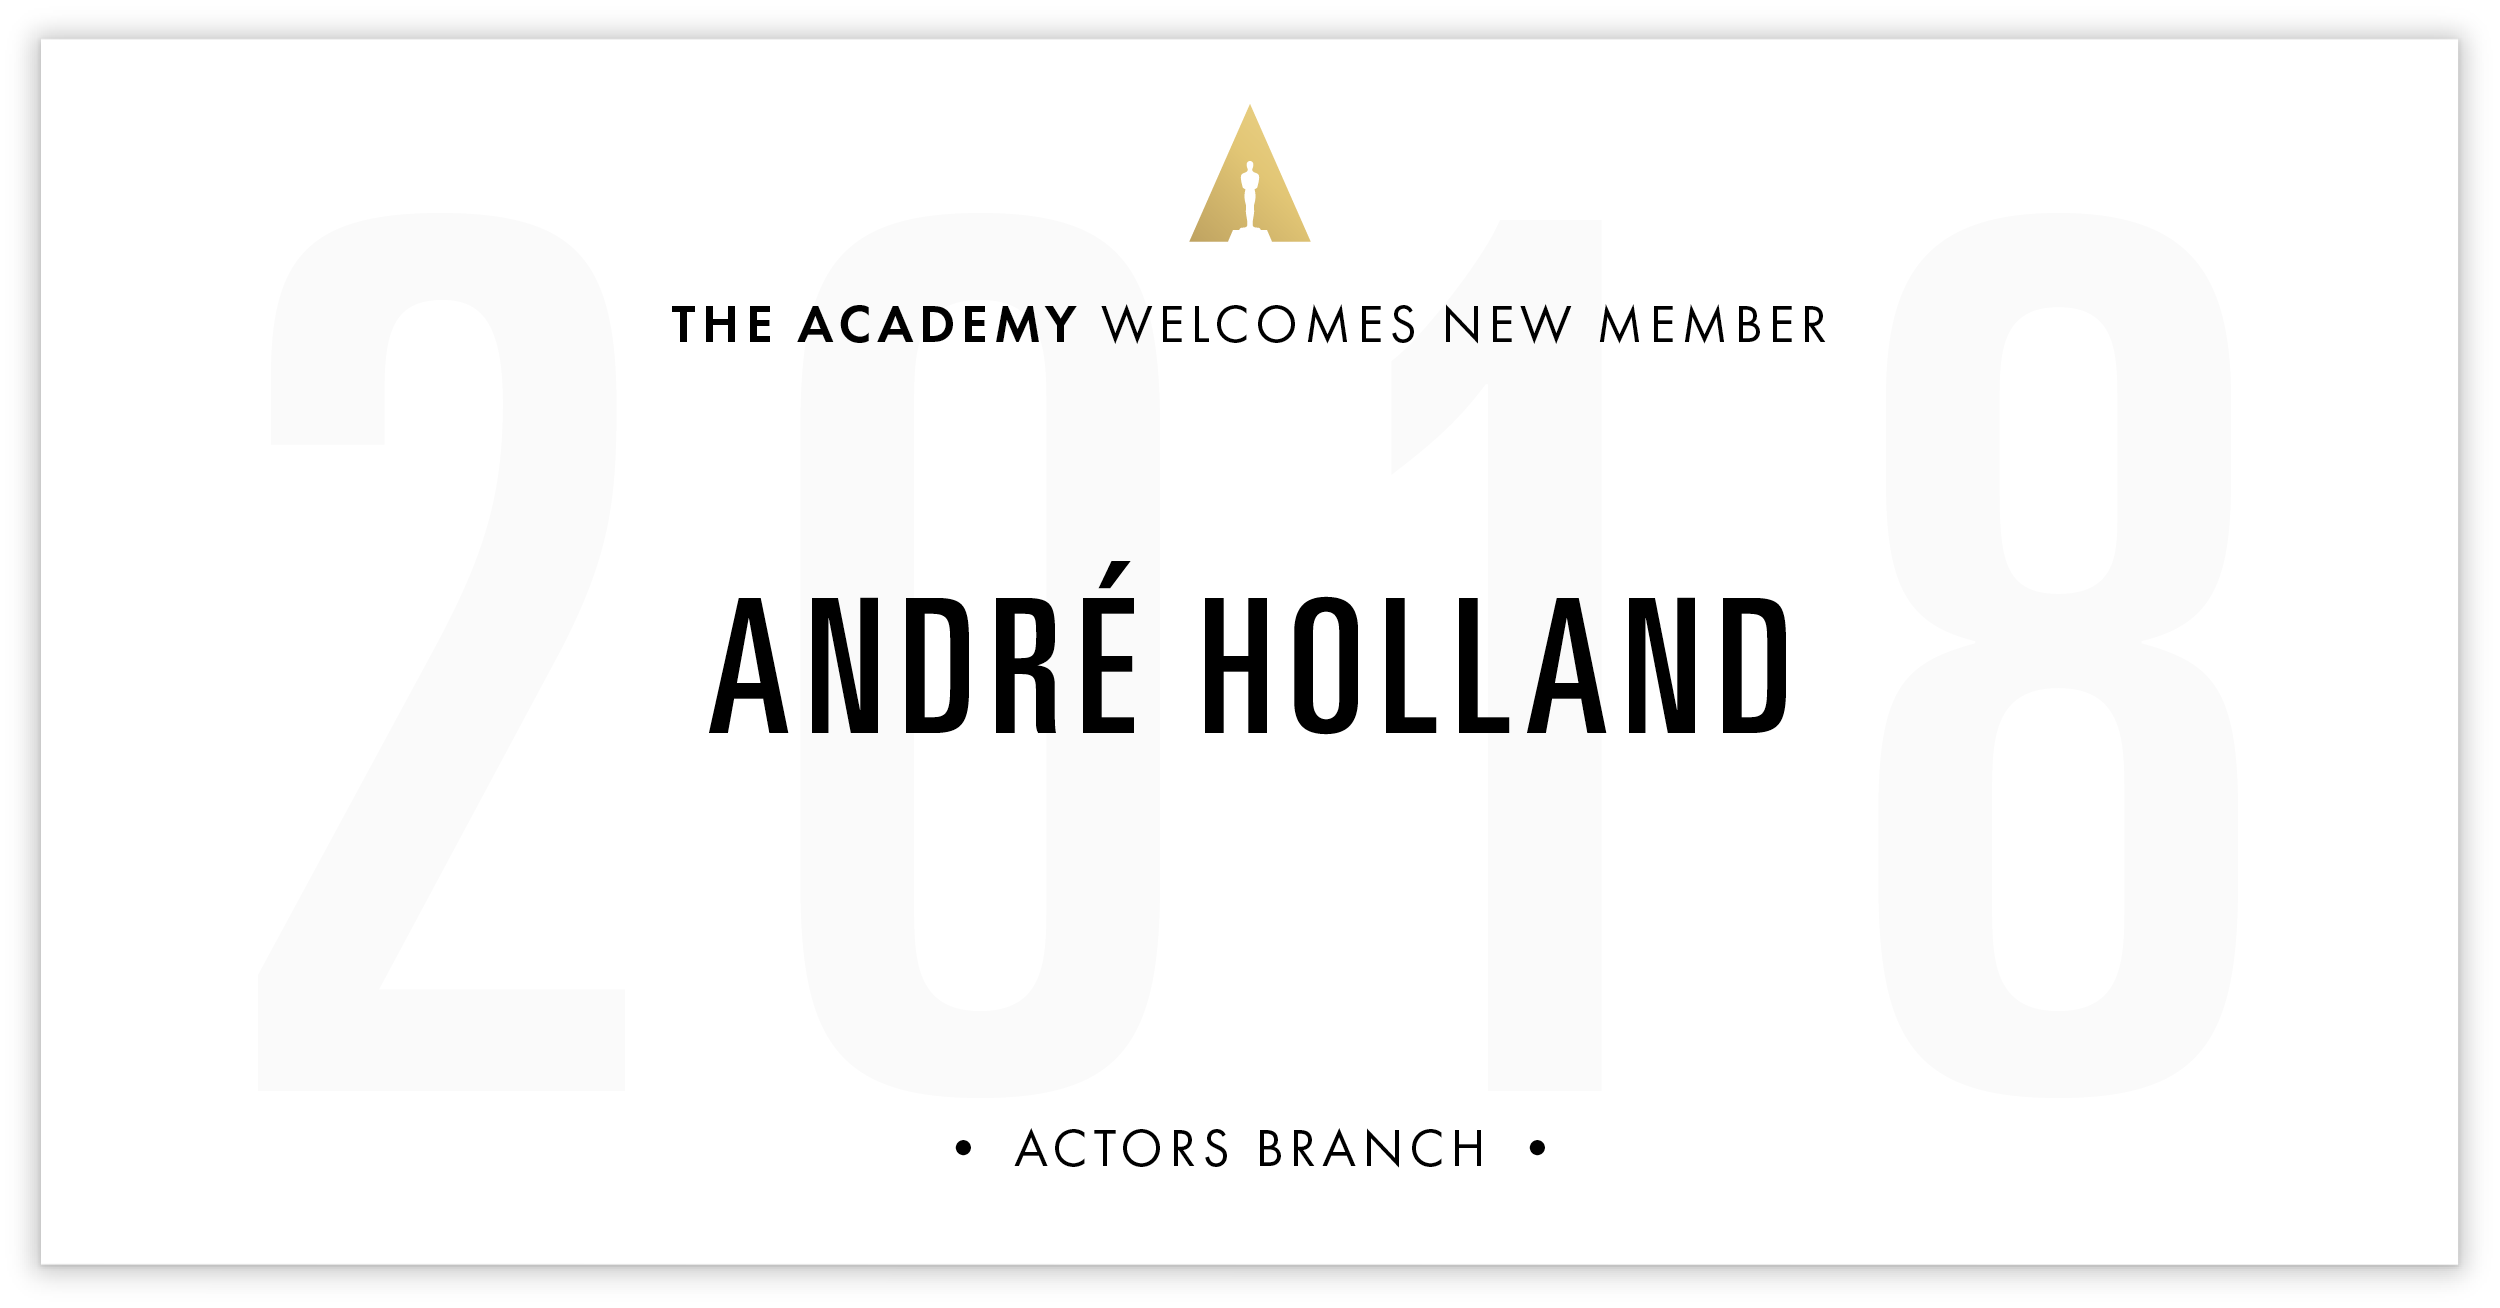 André Holland is invited!